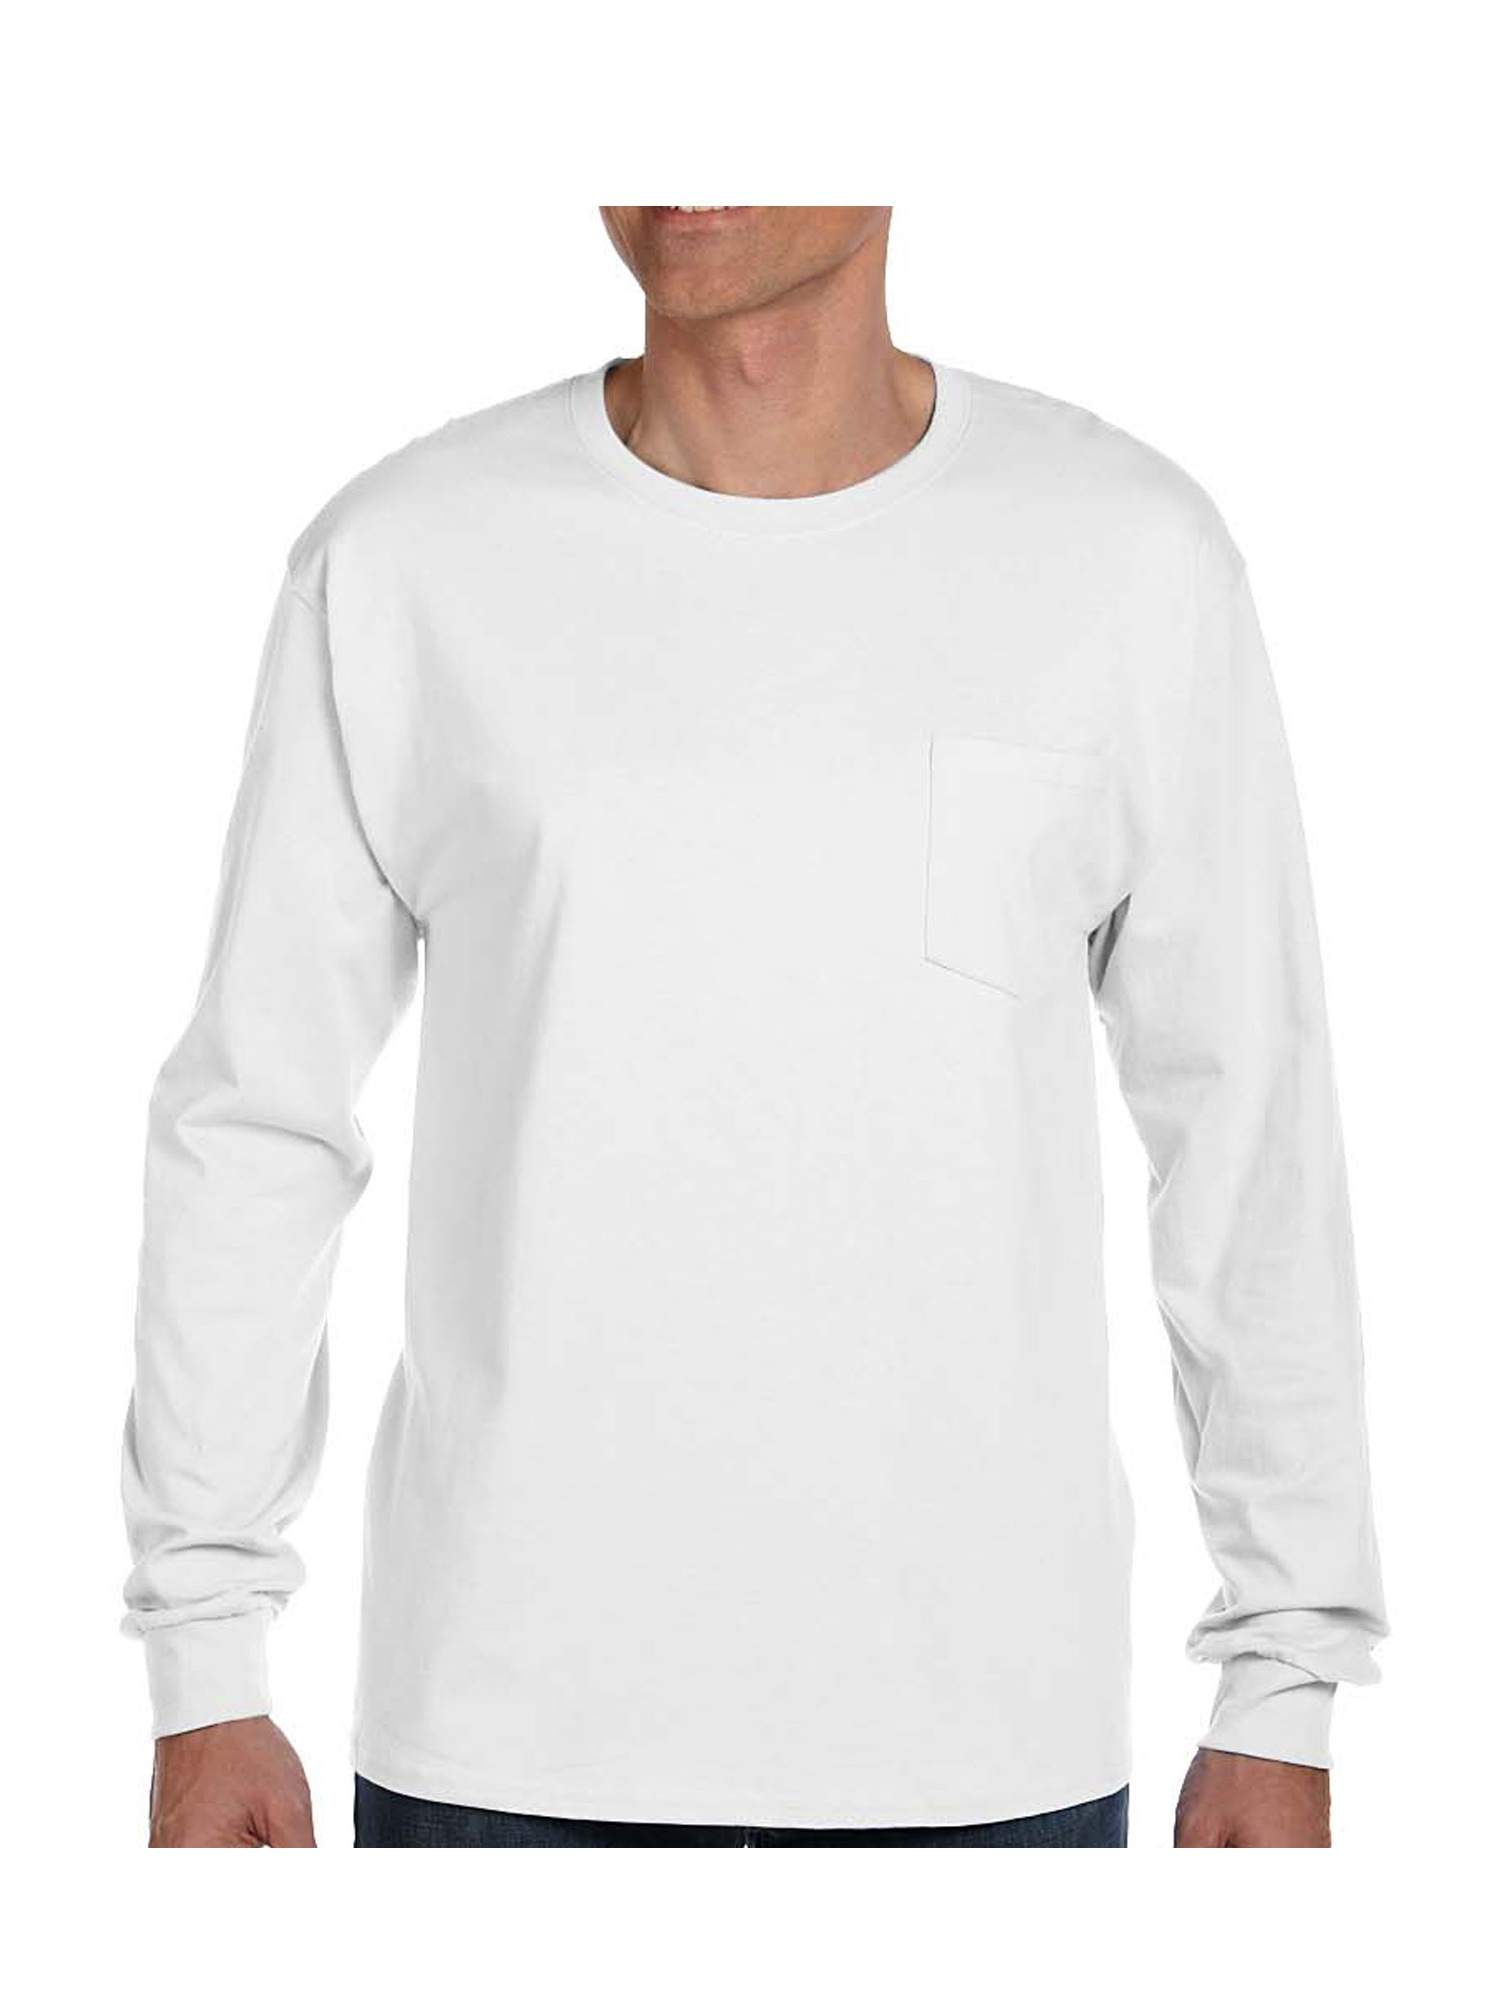 Hanes Adult Tagless Long Sleeve Tee With Pocket, Style 5596